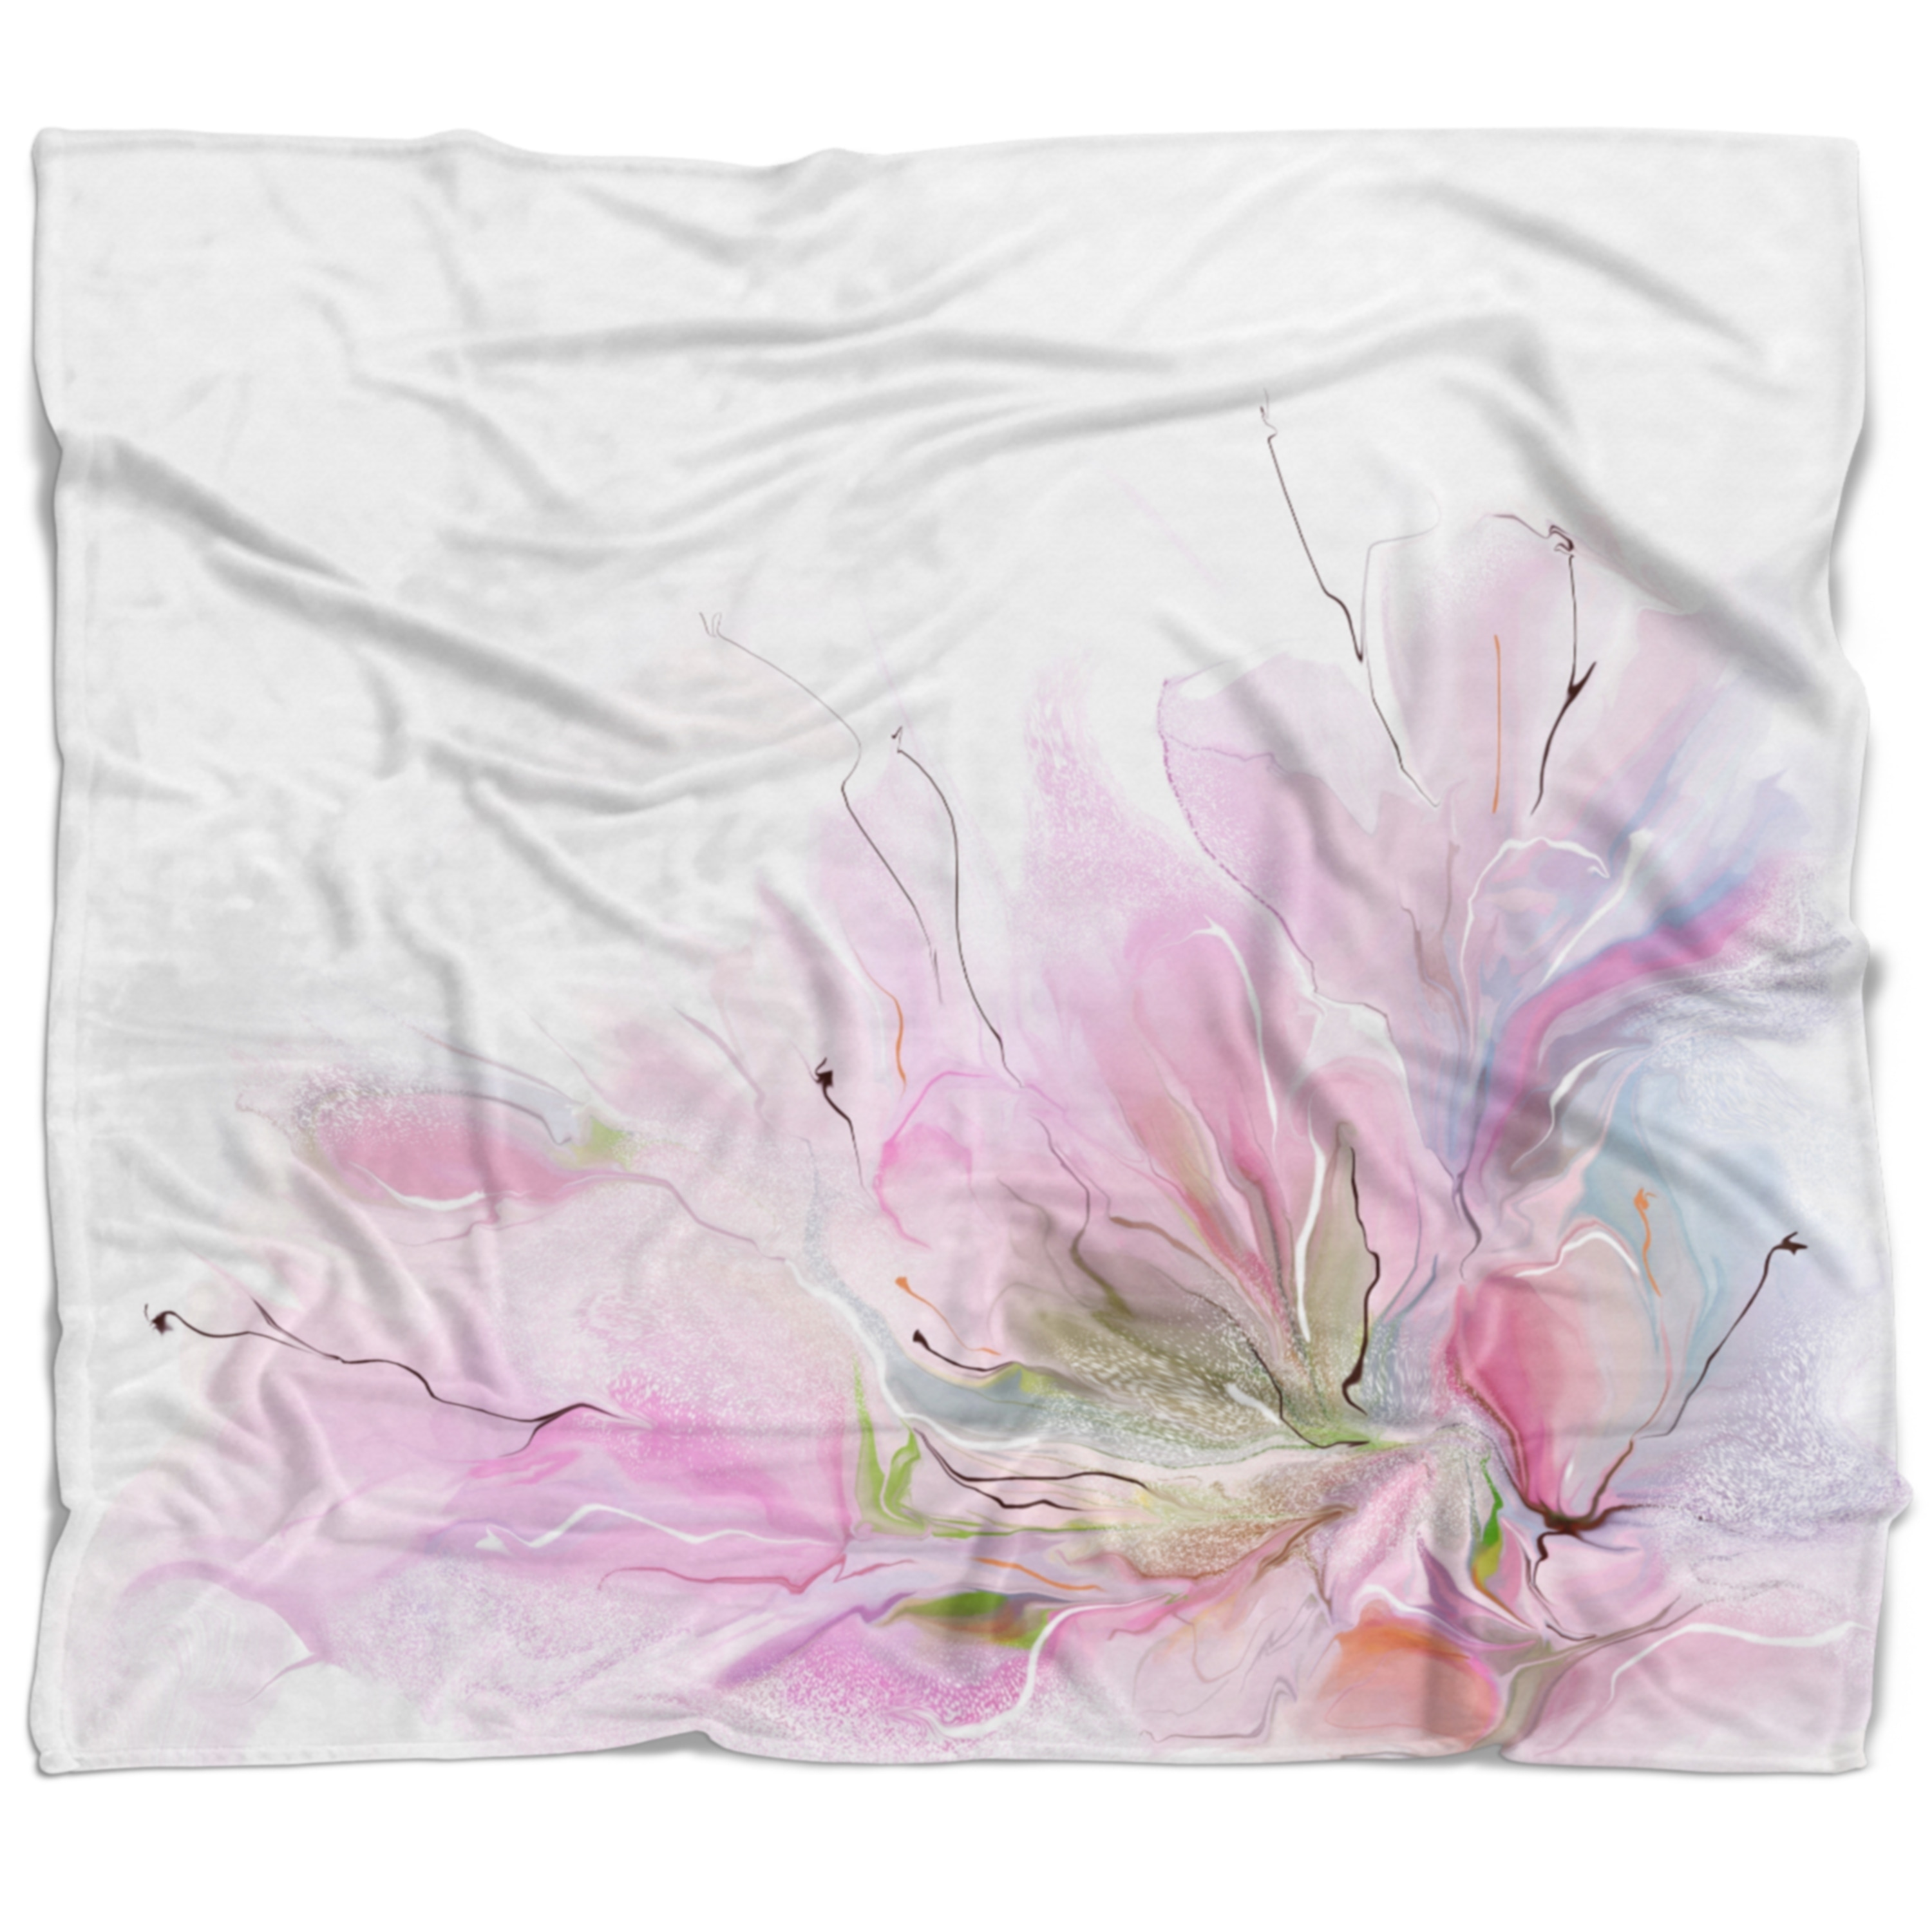 Designart Lovely Pink Flowers Abstract Floral Throw Blanket Free